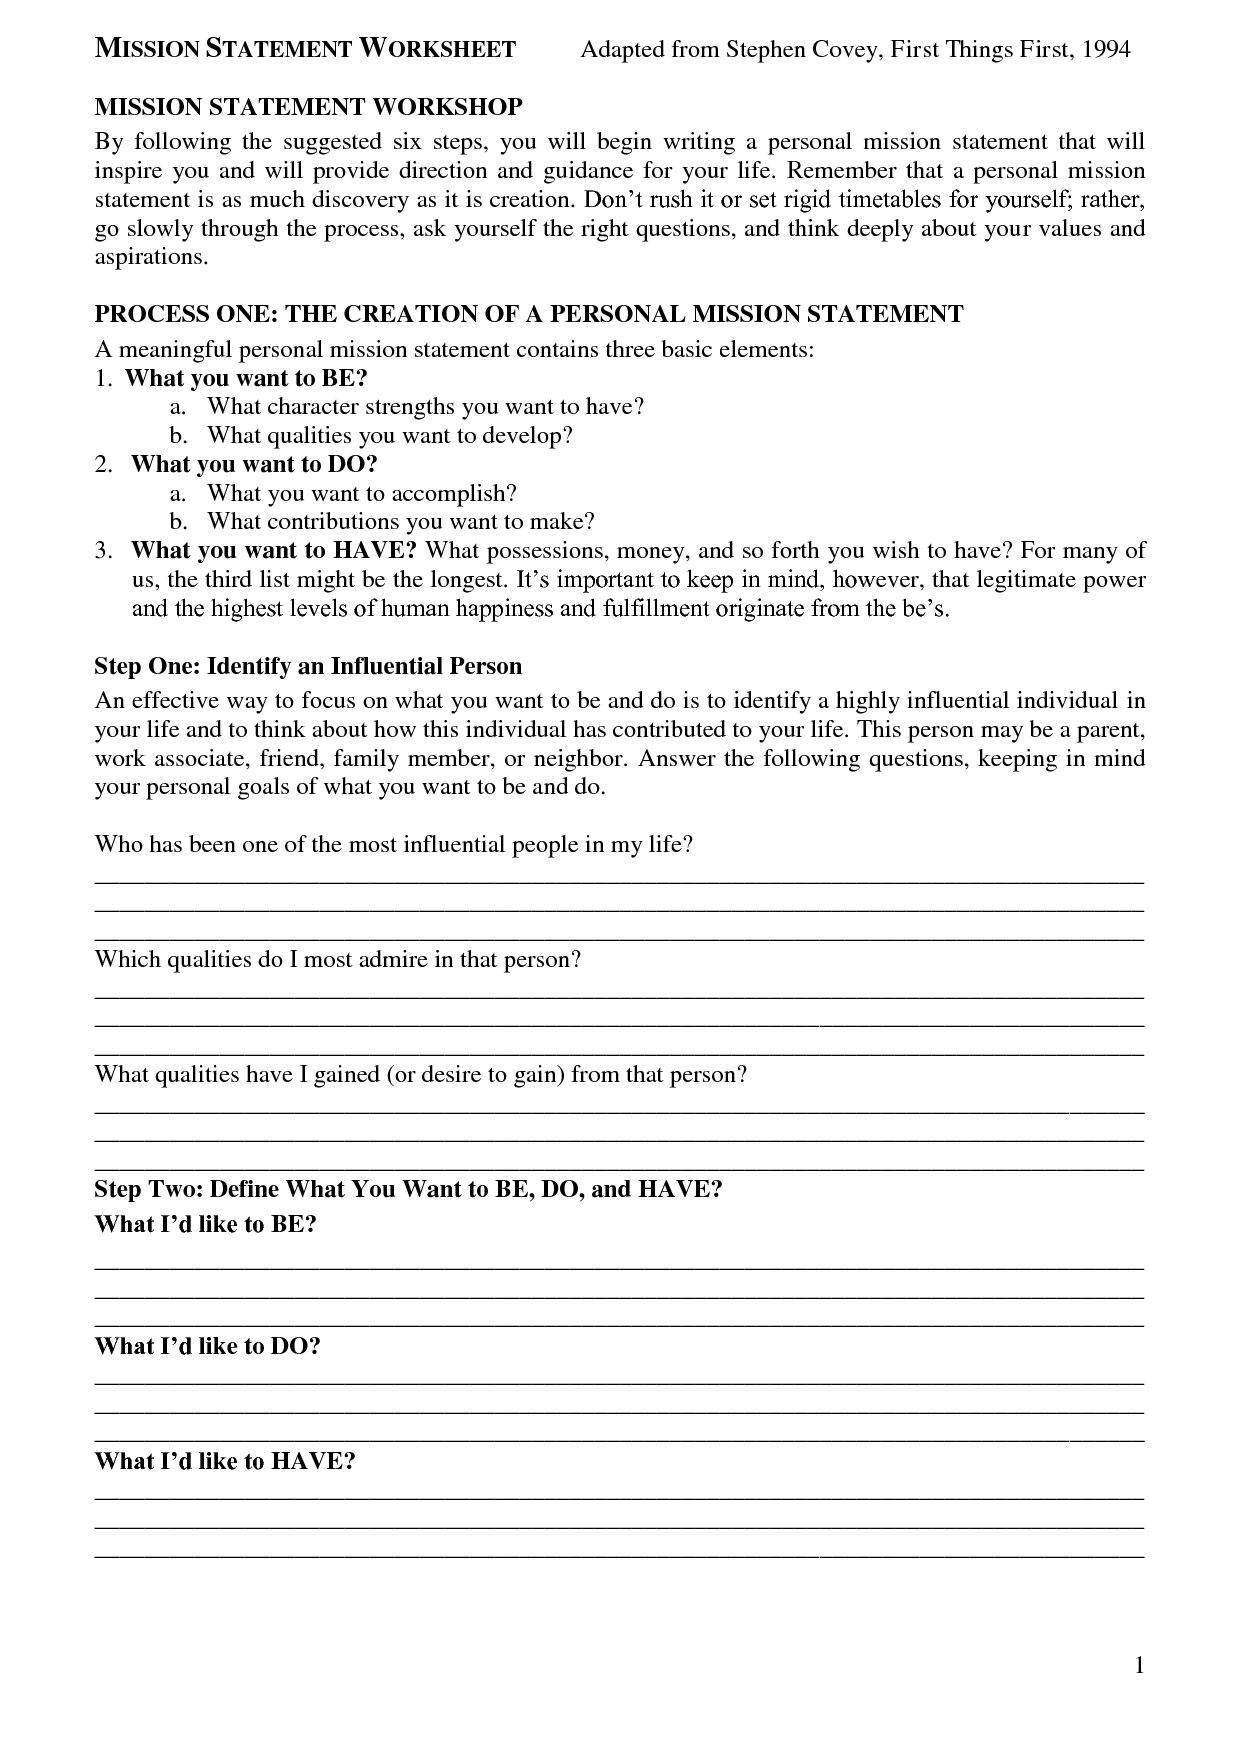 worksheet Personal Mission Statement Worksheet sean covey mission statement worksheet bing images images